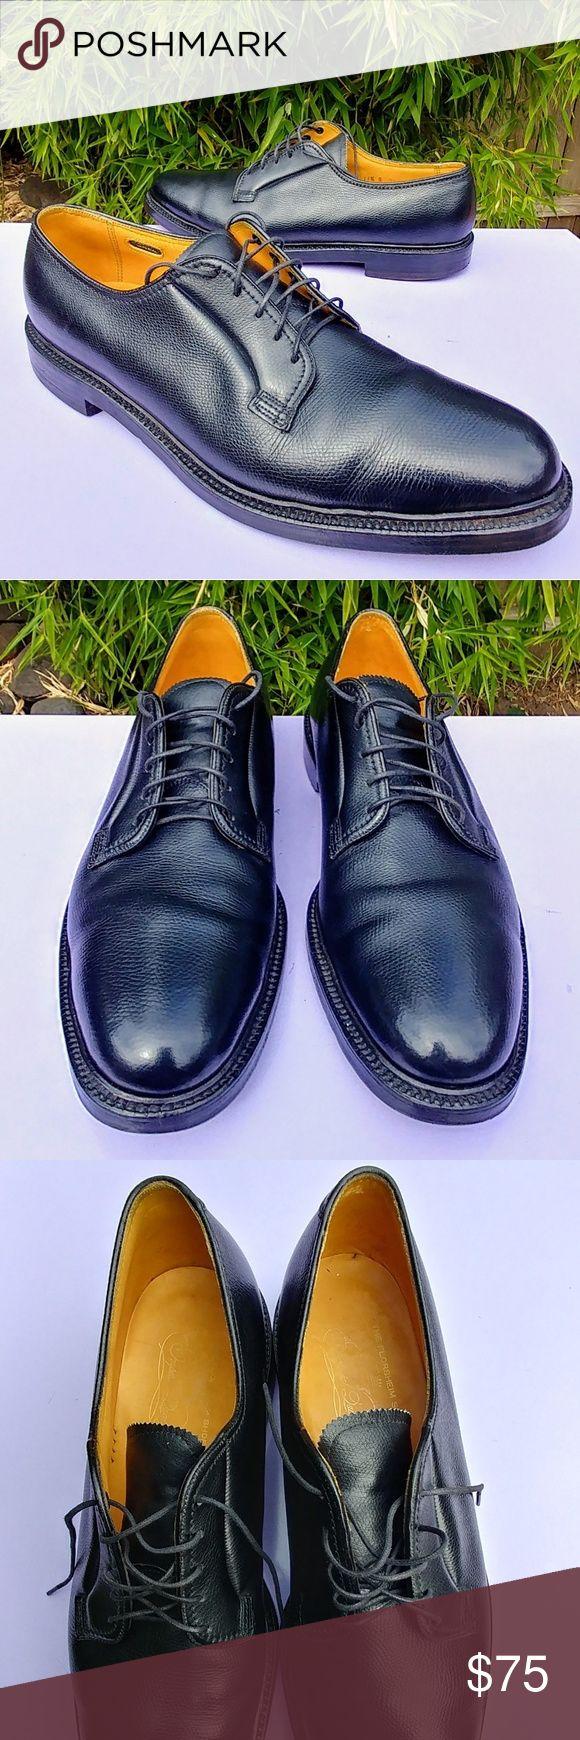 Florsheim Imperial V cleat Oxfords, SZ 11.5 These Vintage V cleat 5 nails Florsheim Imperial are pre-owned and in great condition as pictured. Florsheim Imperial Shoes Oxfords & Derbys